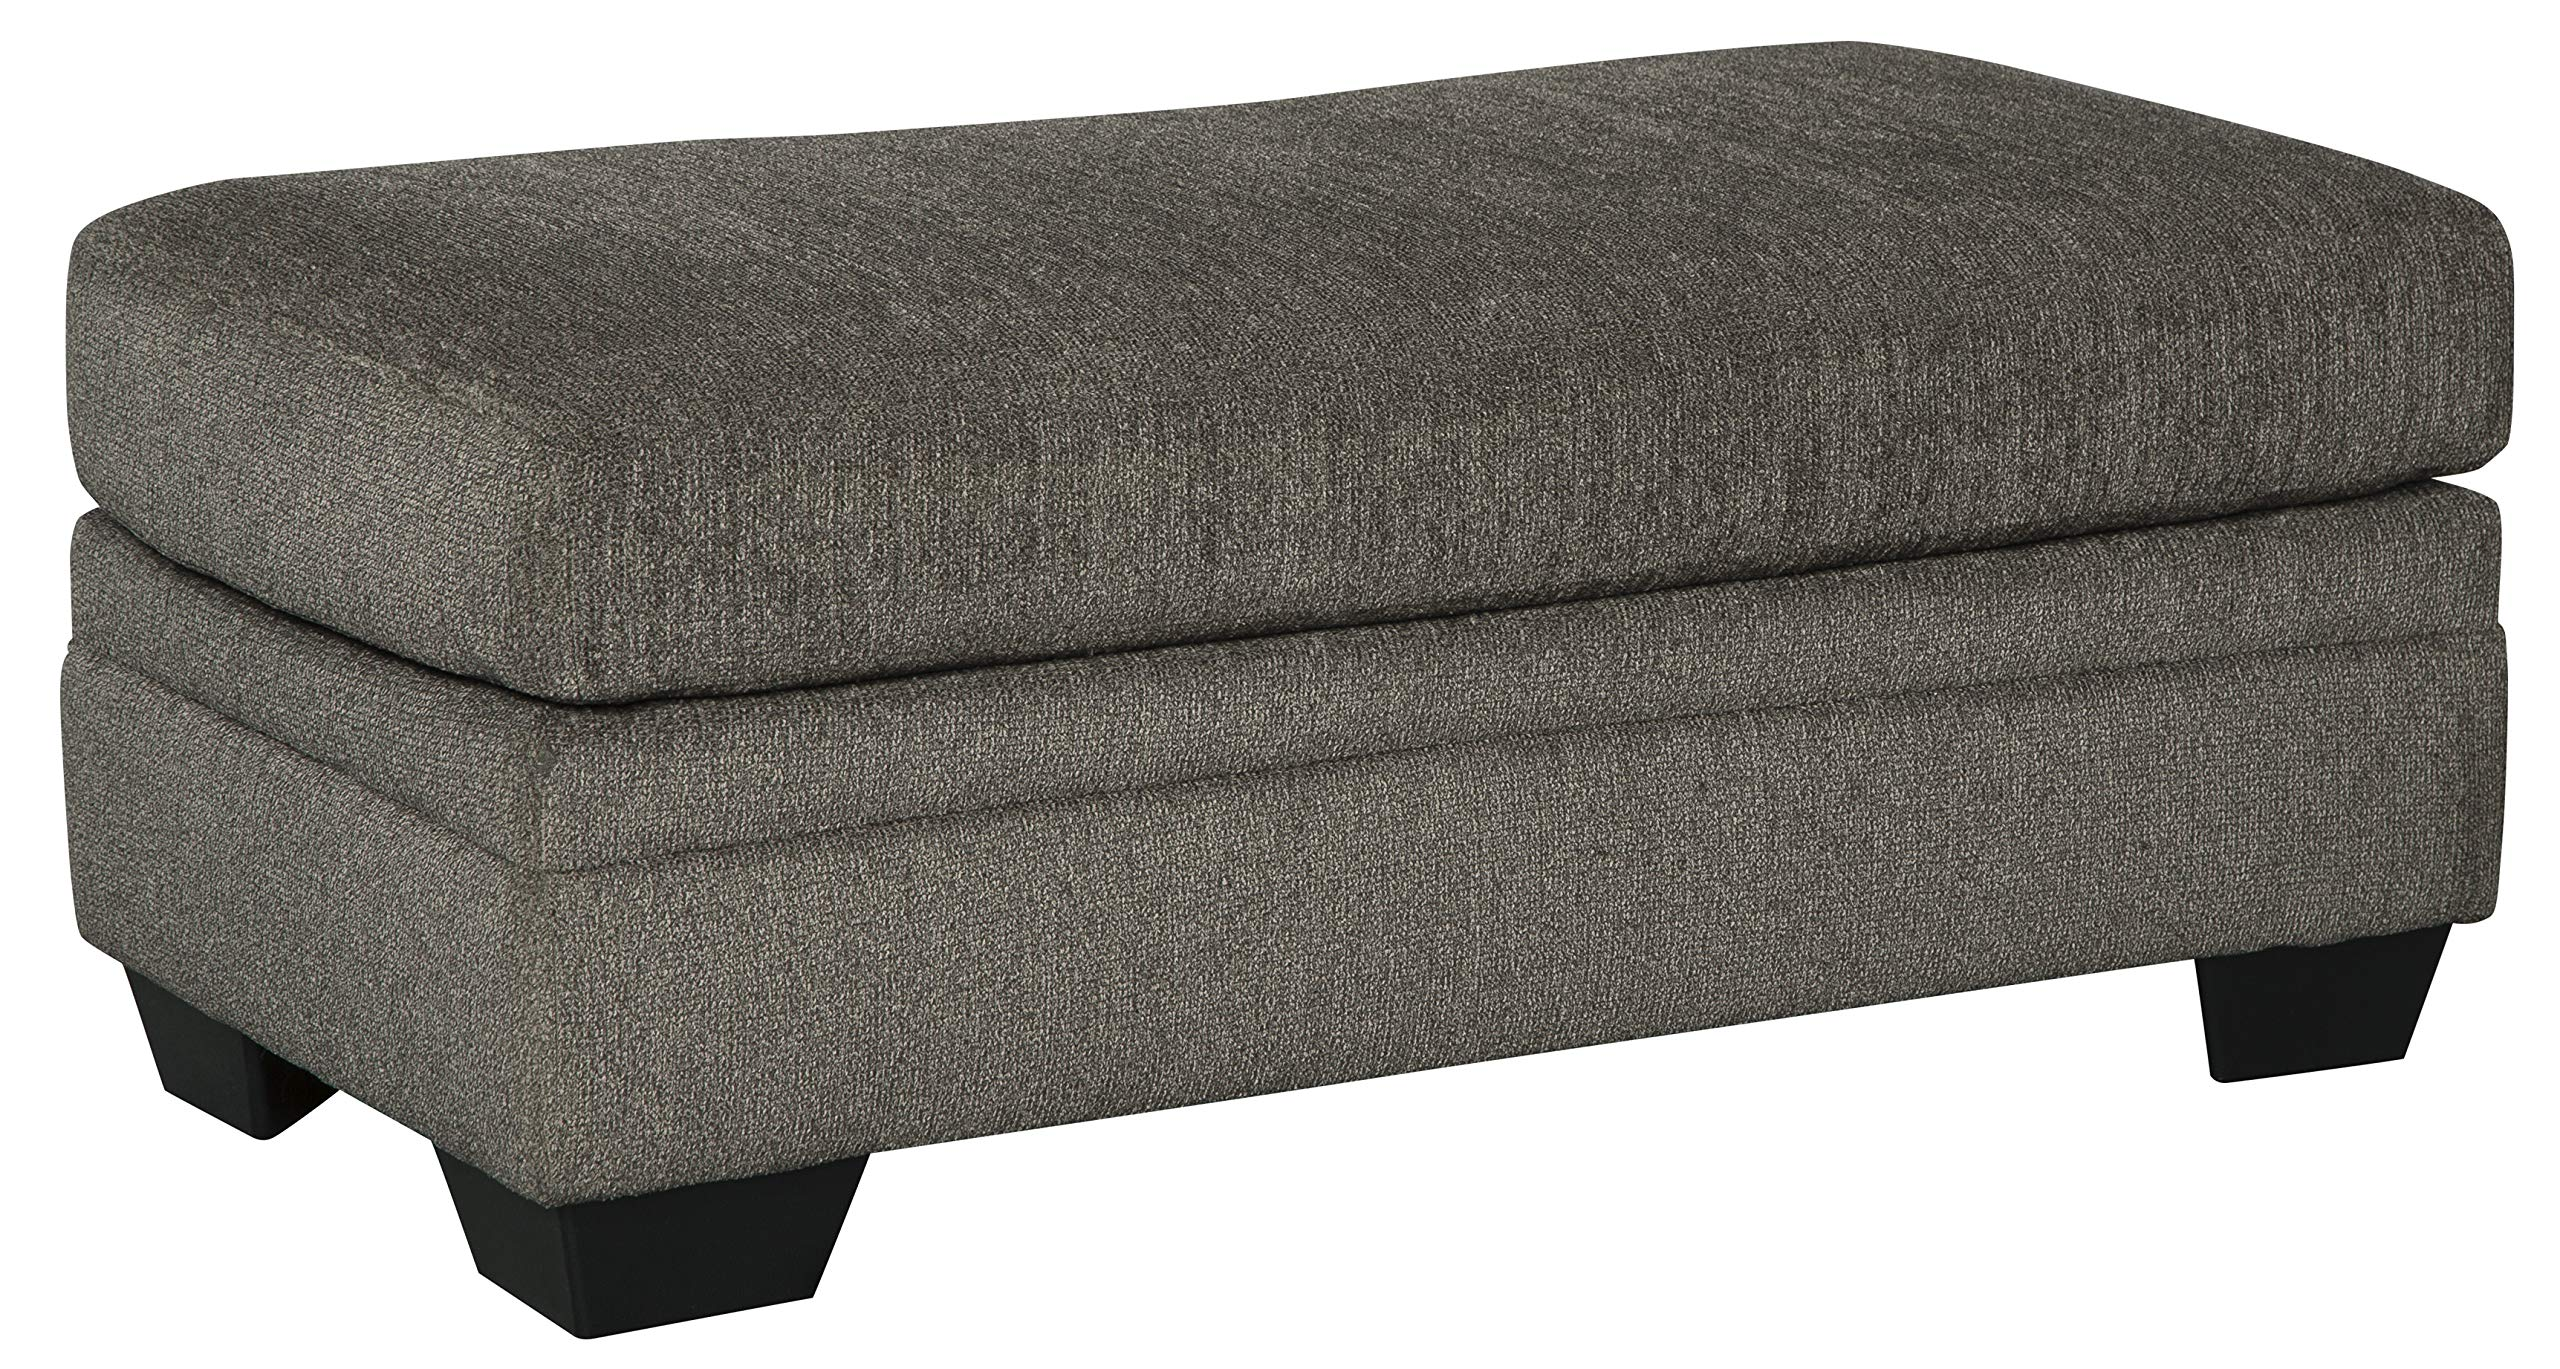 Ashley Furniture Signature Design - Dorsten Contemporary Ottoman and Footrest - Slate Grey by Signature Design by Ashley